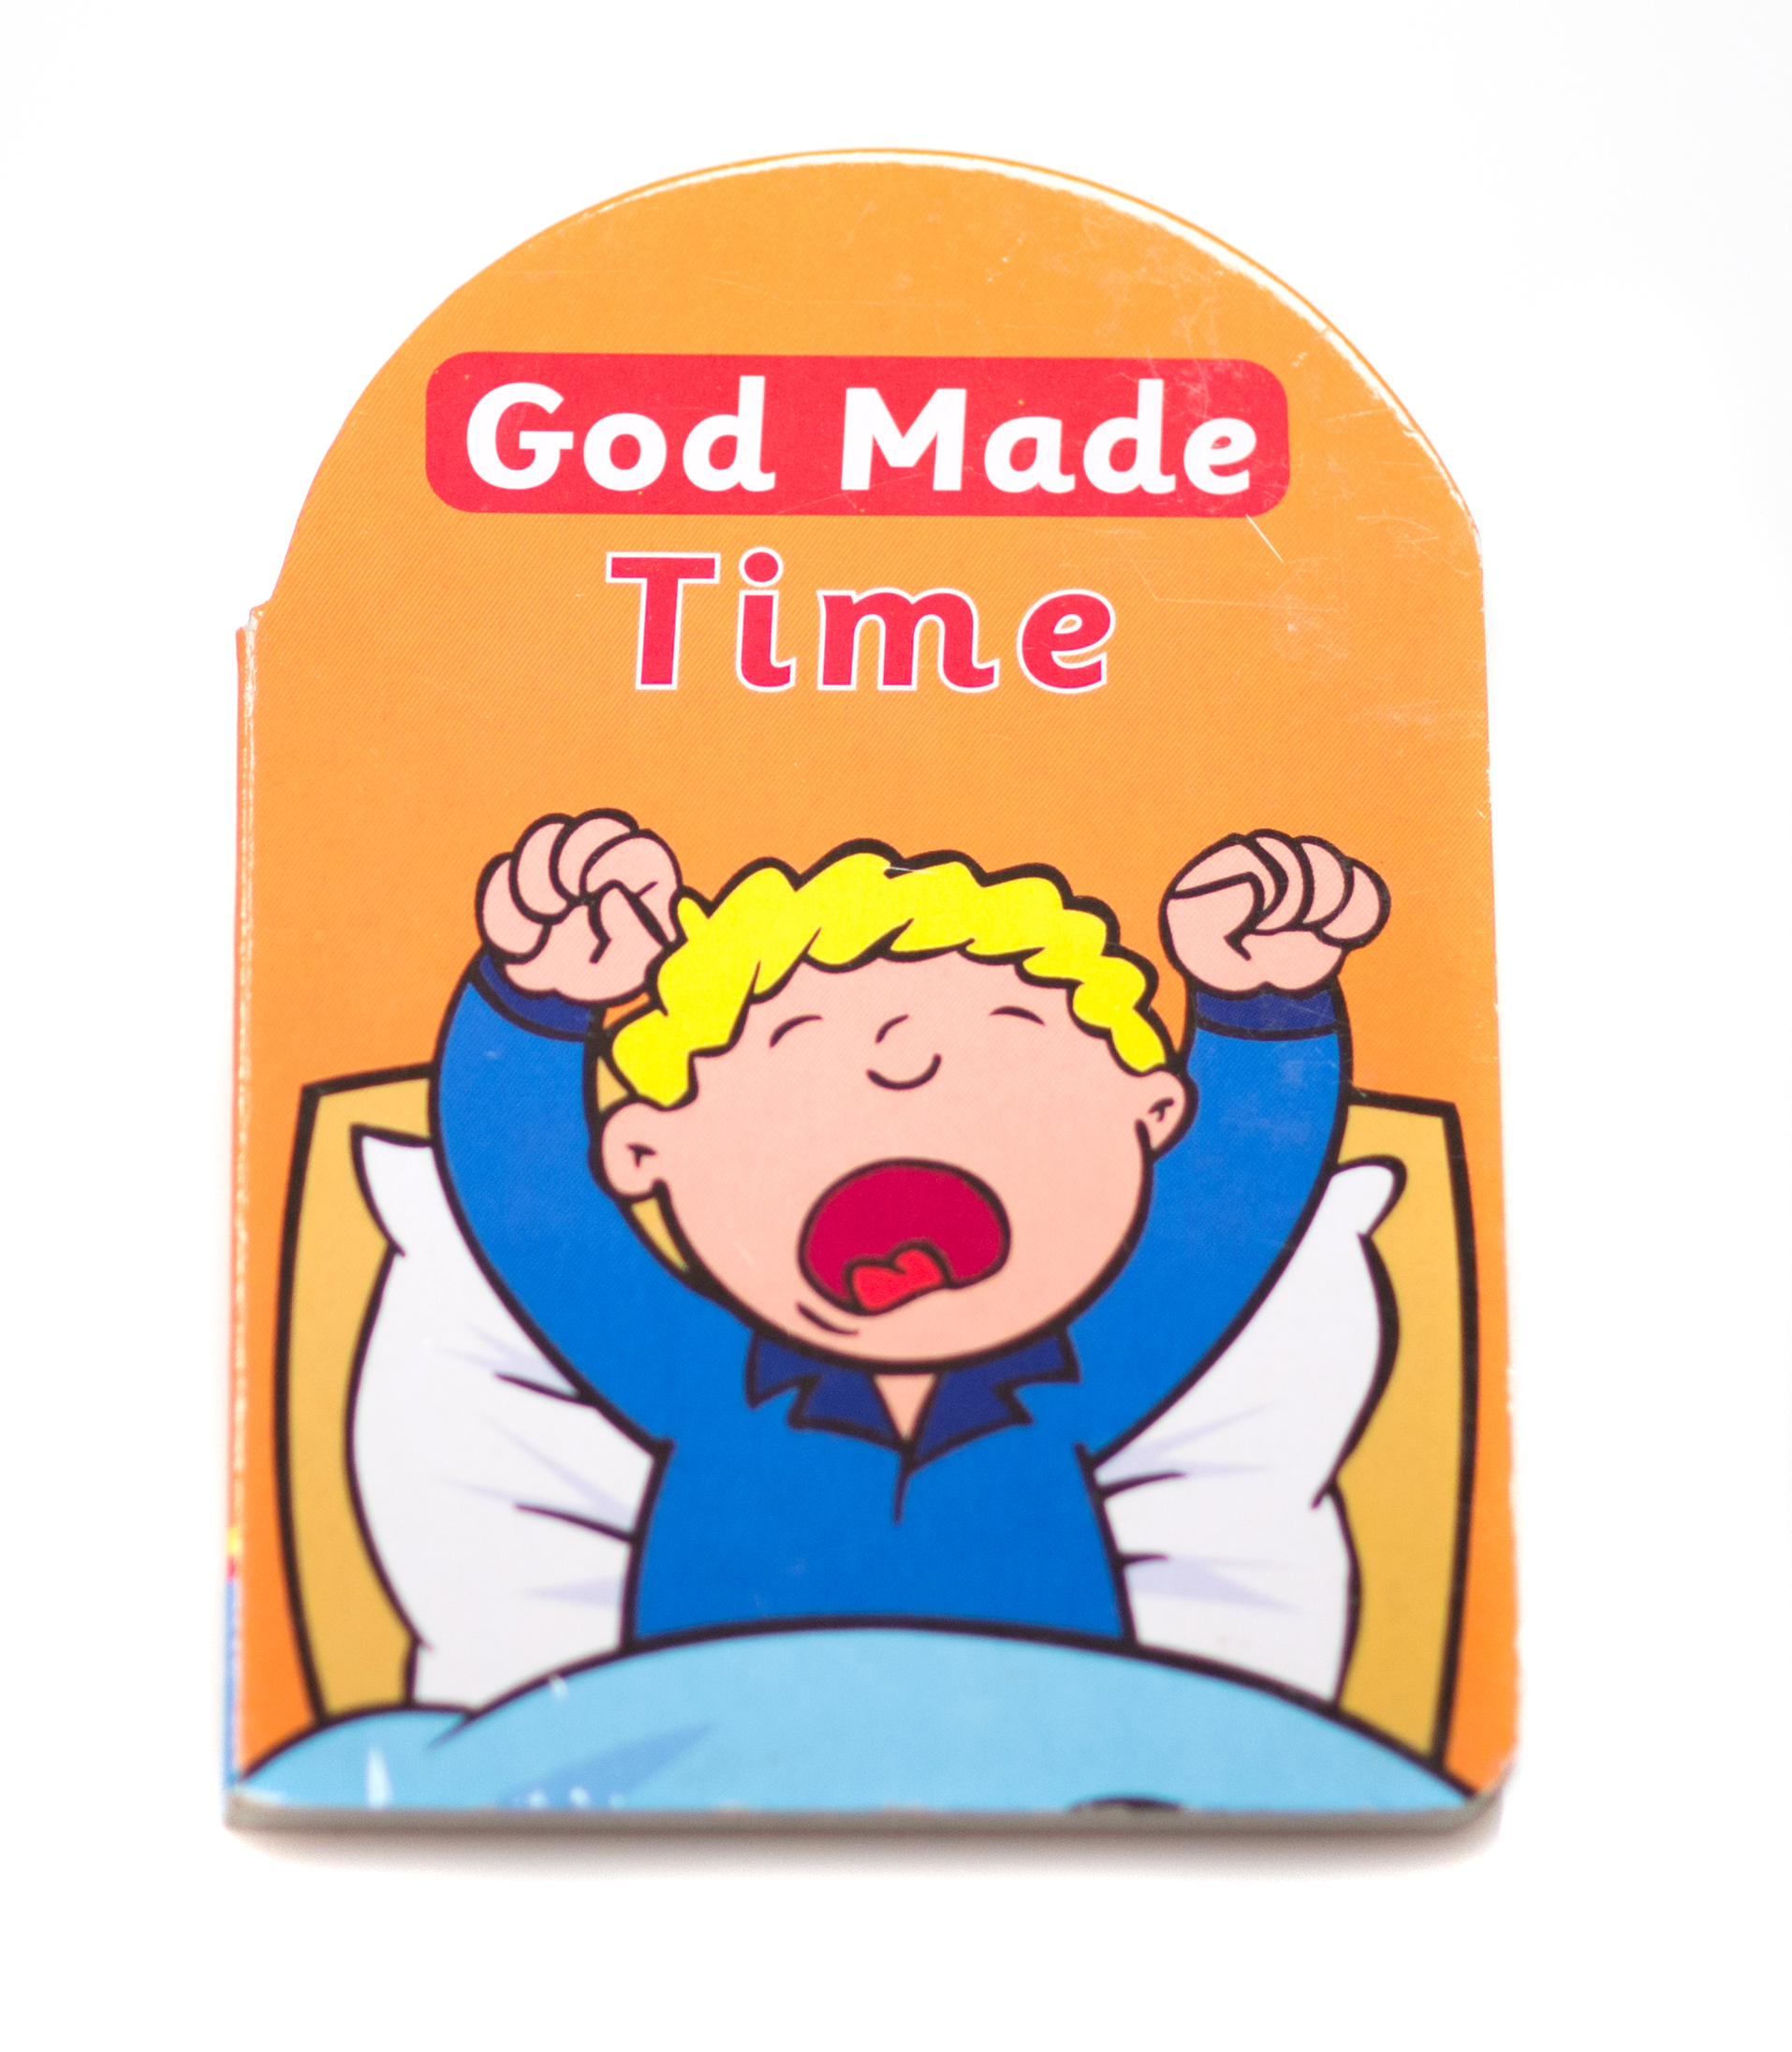 The 'God Made' Children's Book Series